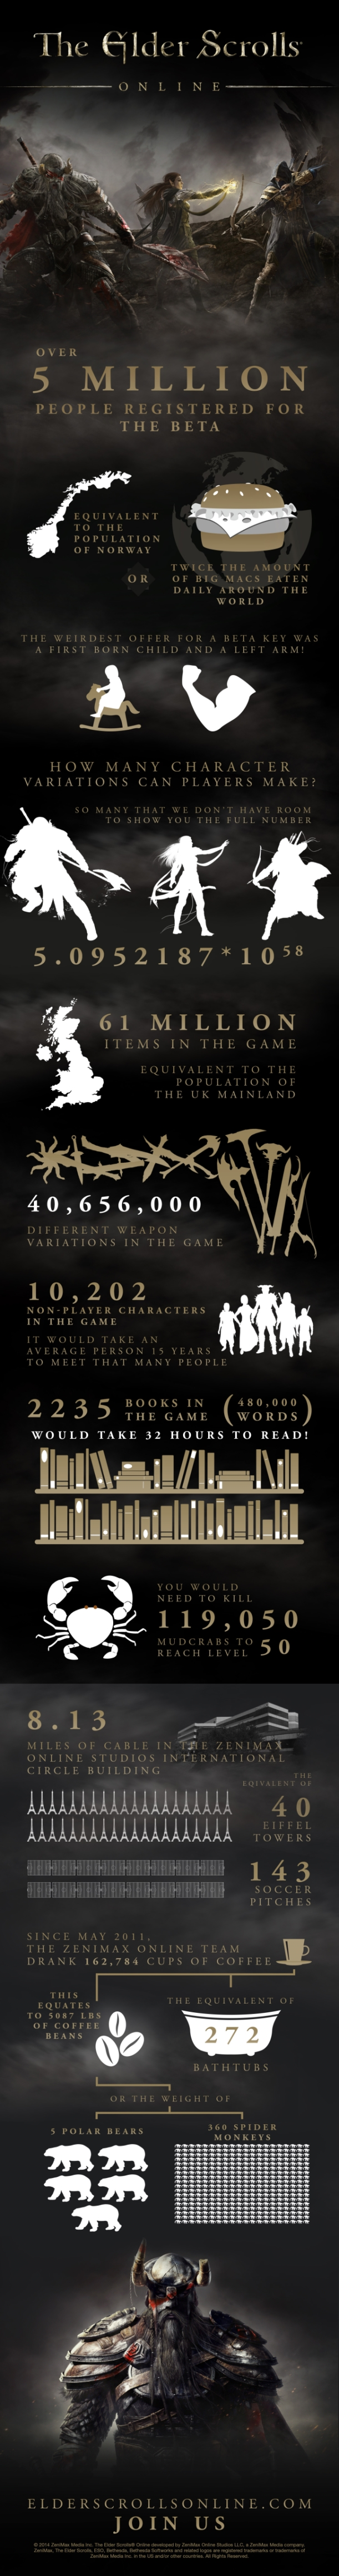 Exploring the Elder Scrolls Online - ESO Opening day infographic